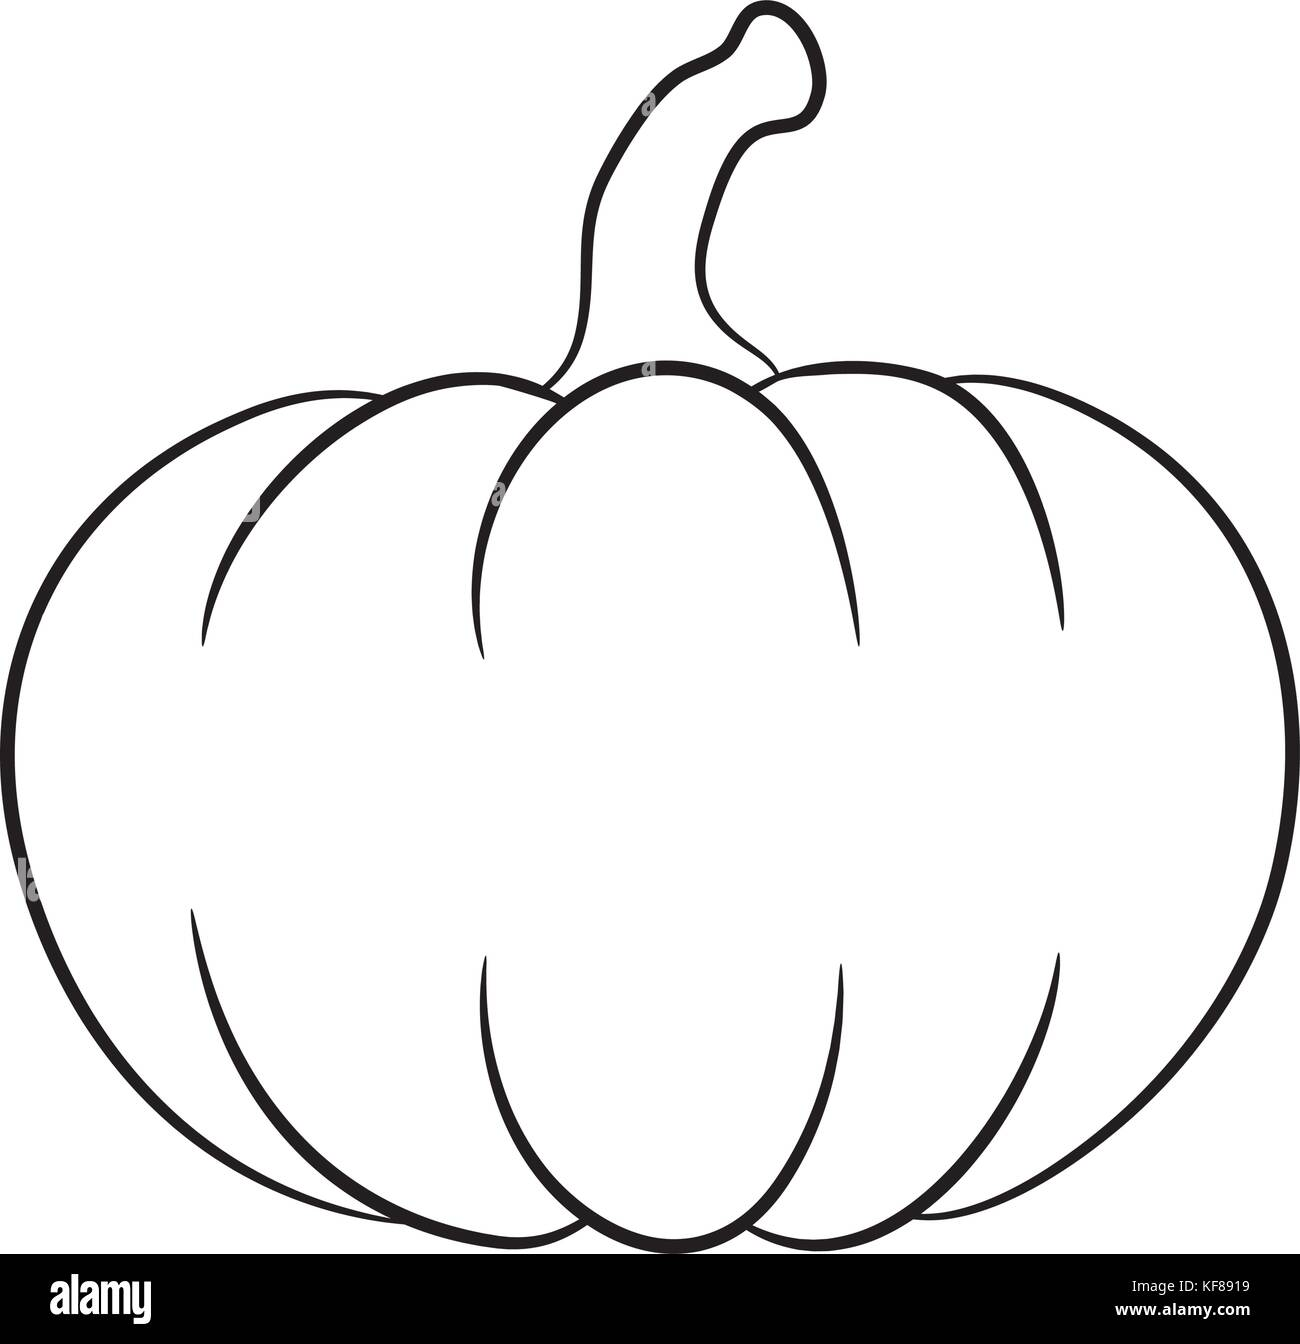 Pumpkin Outline Vector Design Isolated On White Background Stock